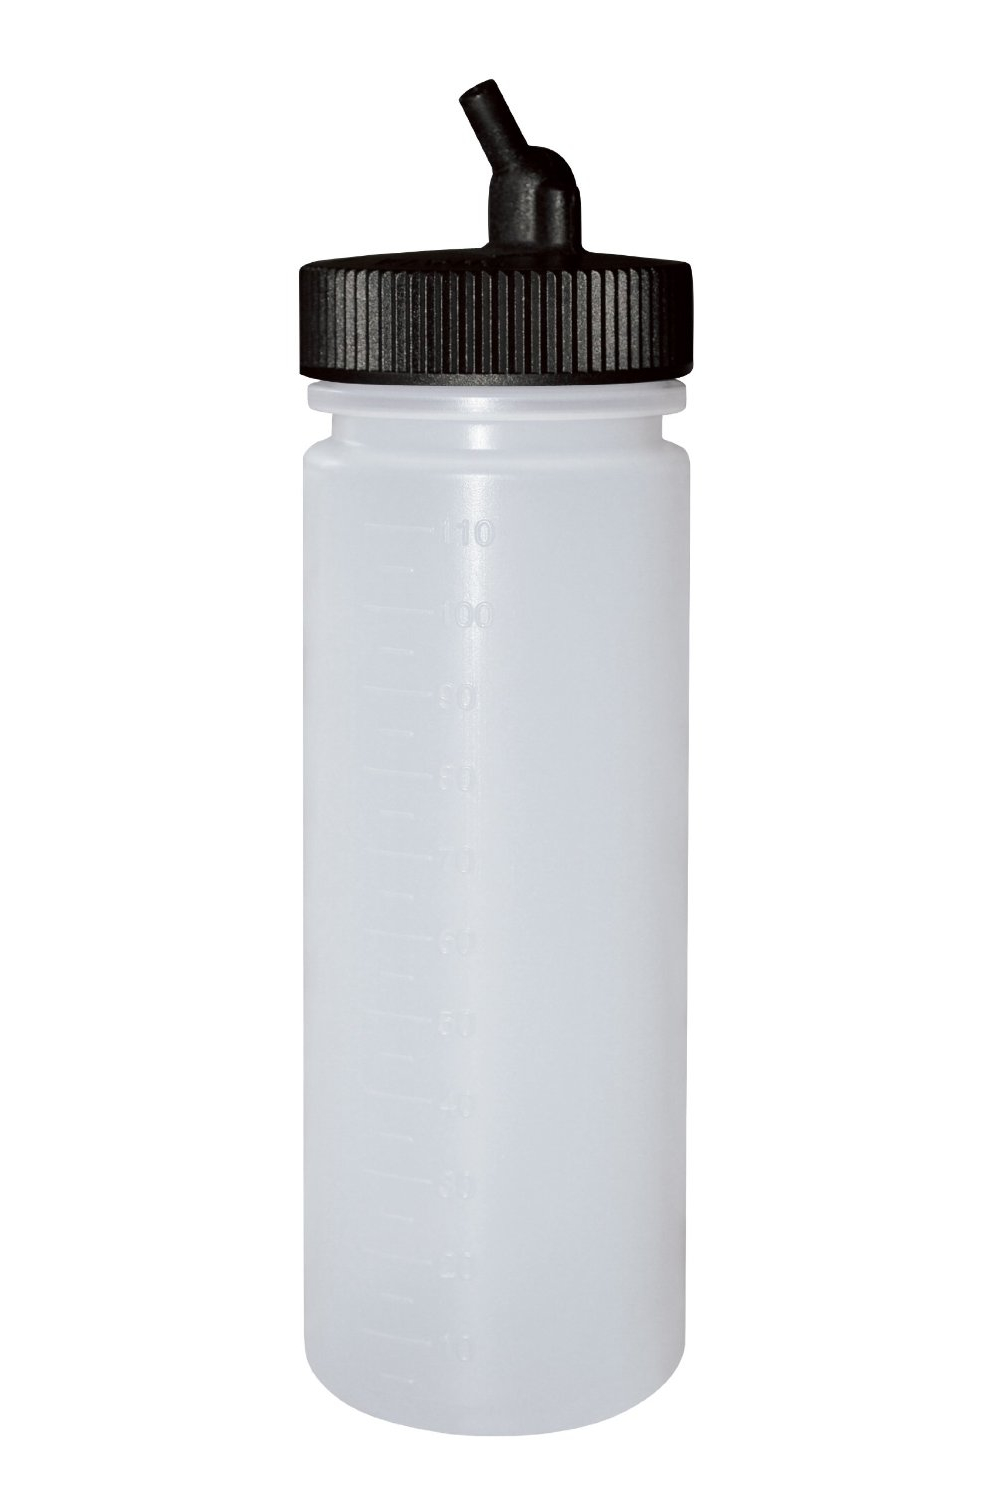 Iwata Big Mouth Bottle 4 Oz